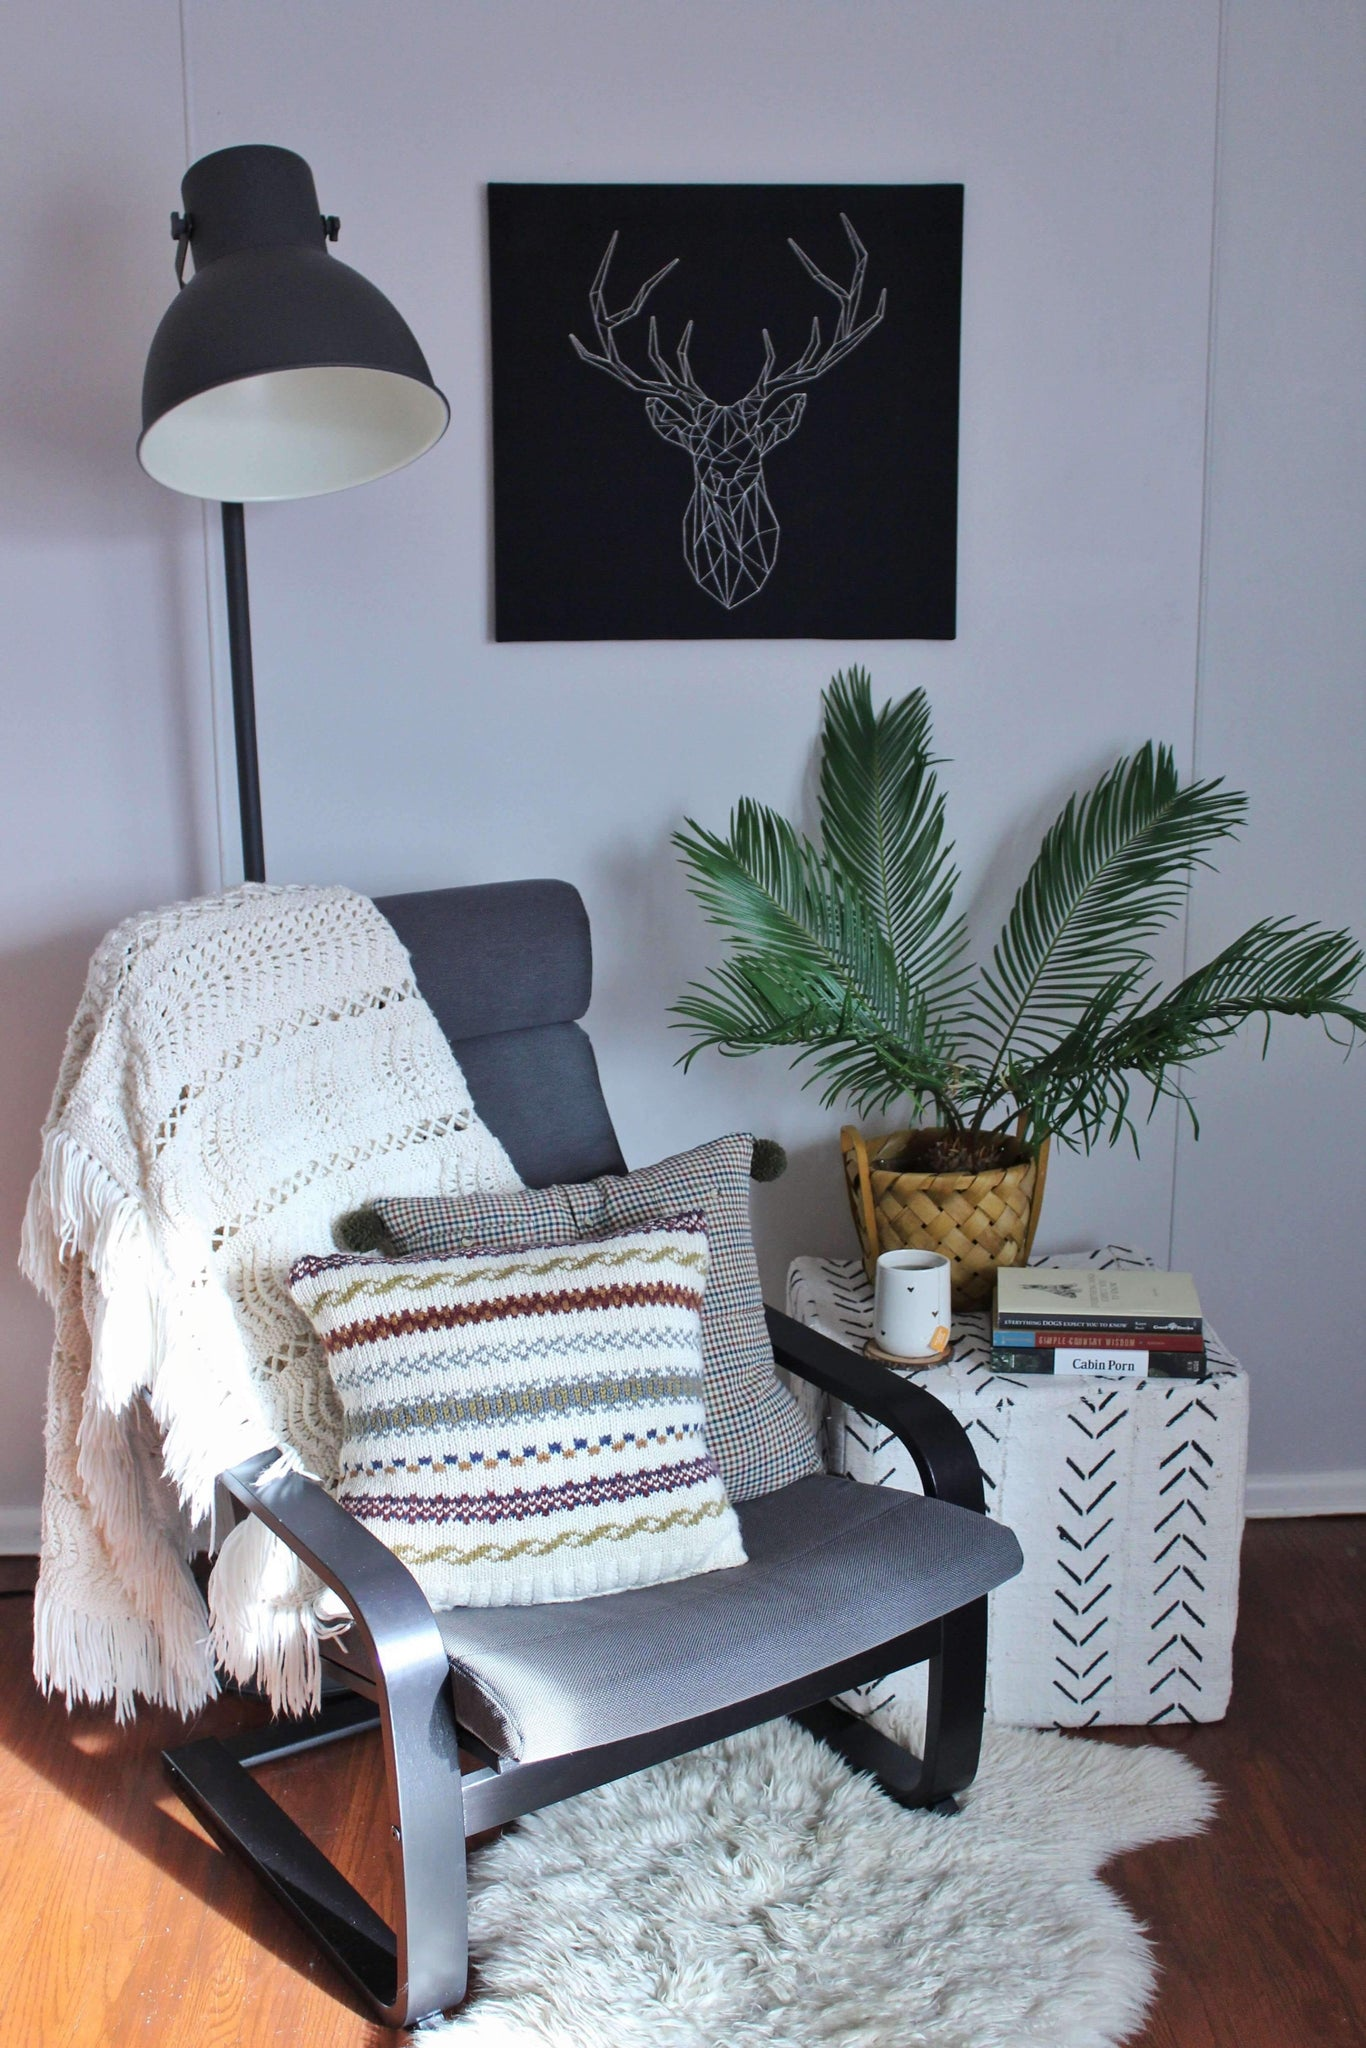 elizabeth o. vintage - Fair Isle Sweater Pillow